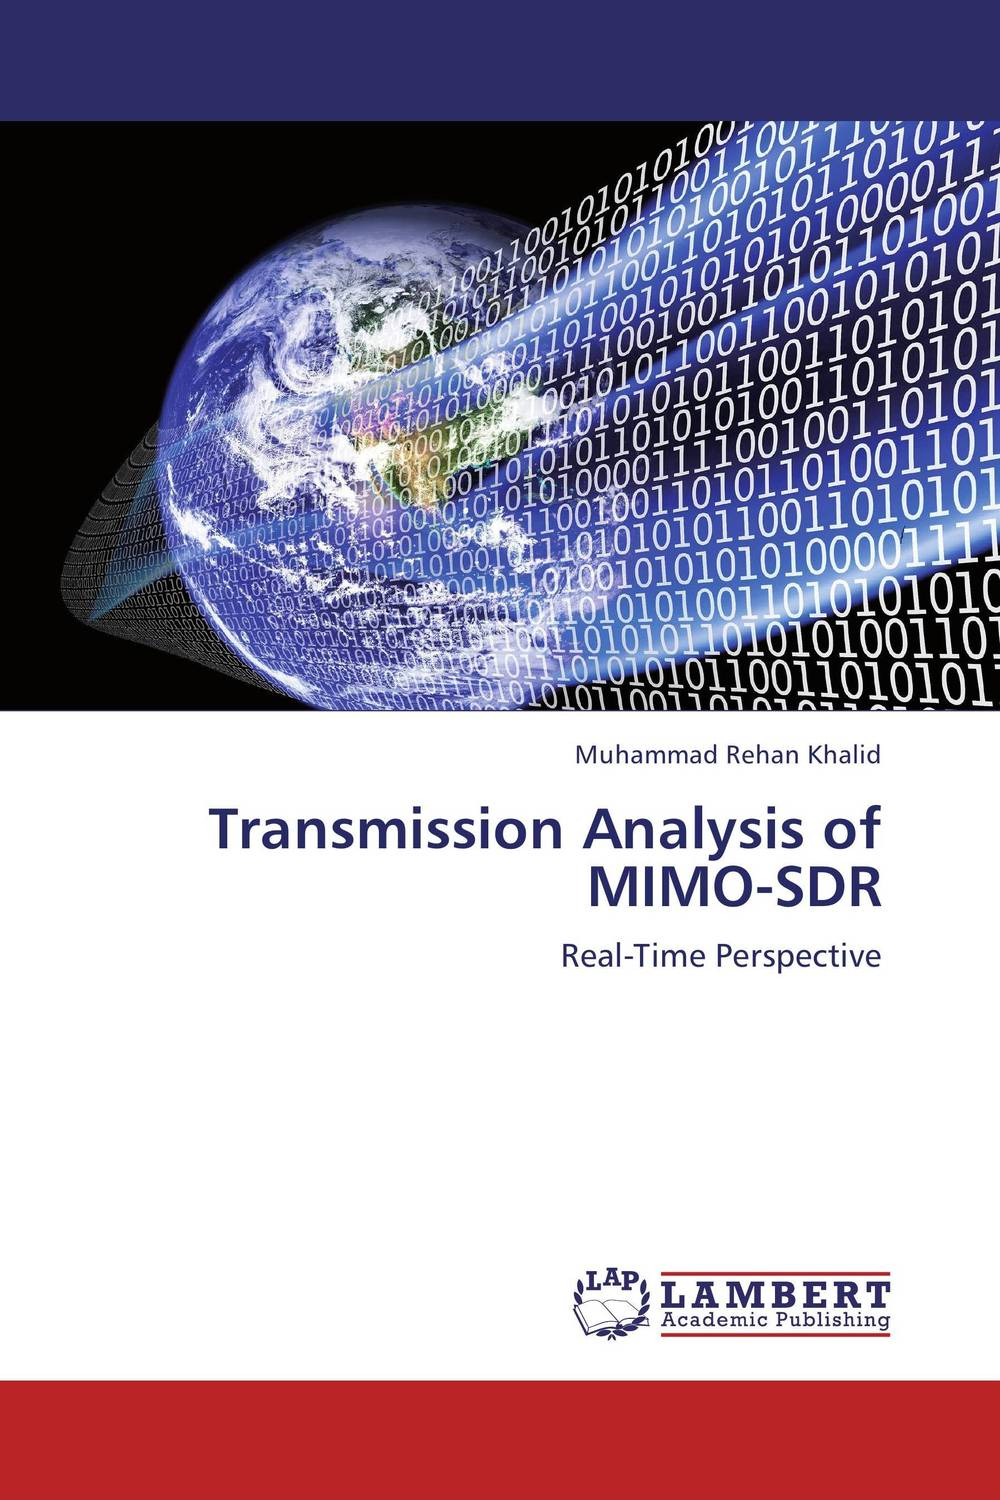 Transmission Analysis of MIMO-SDR